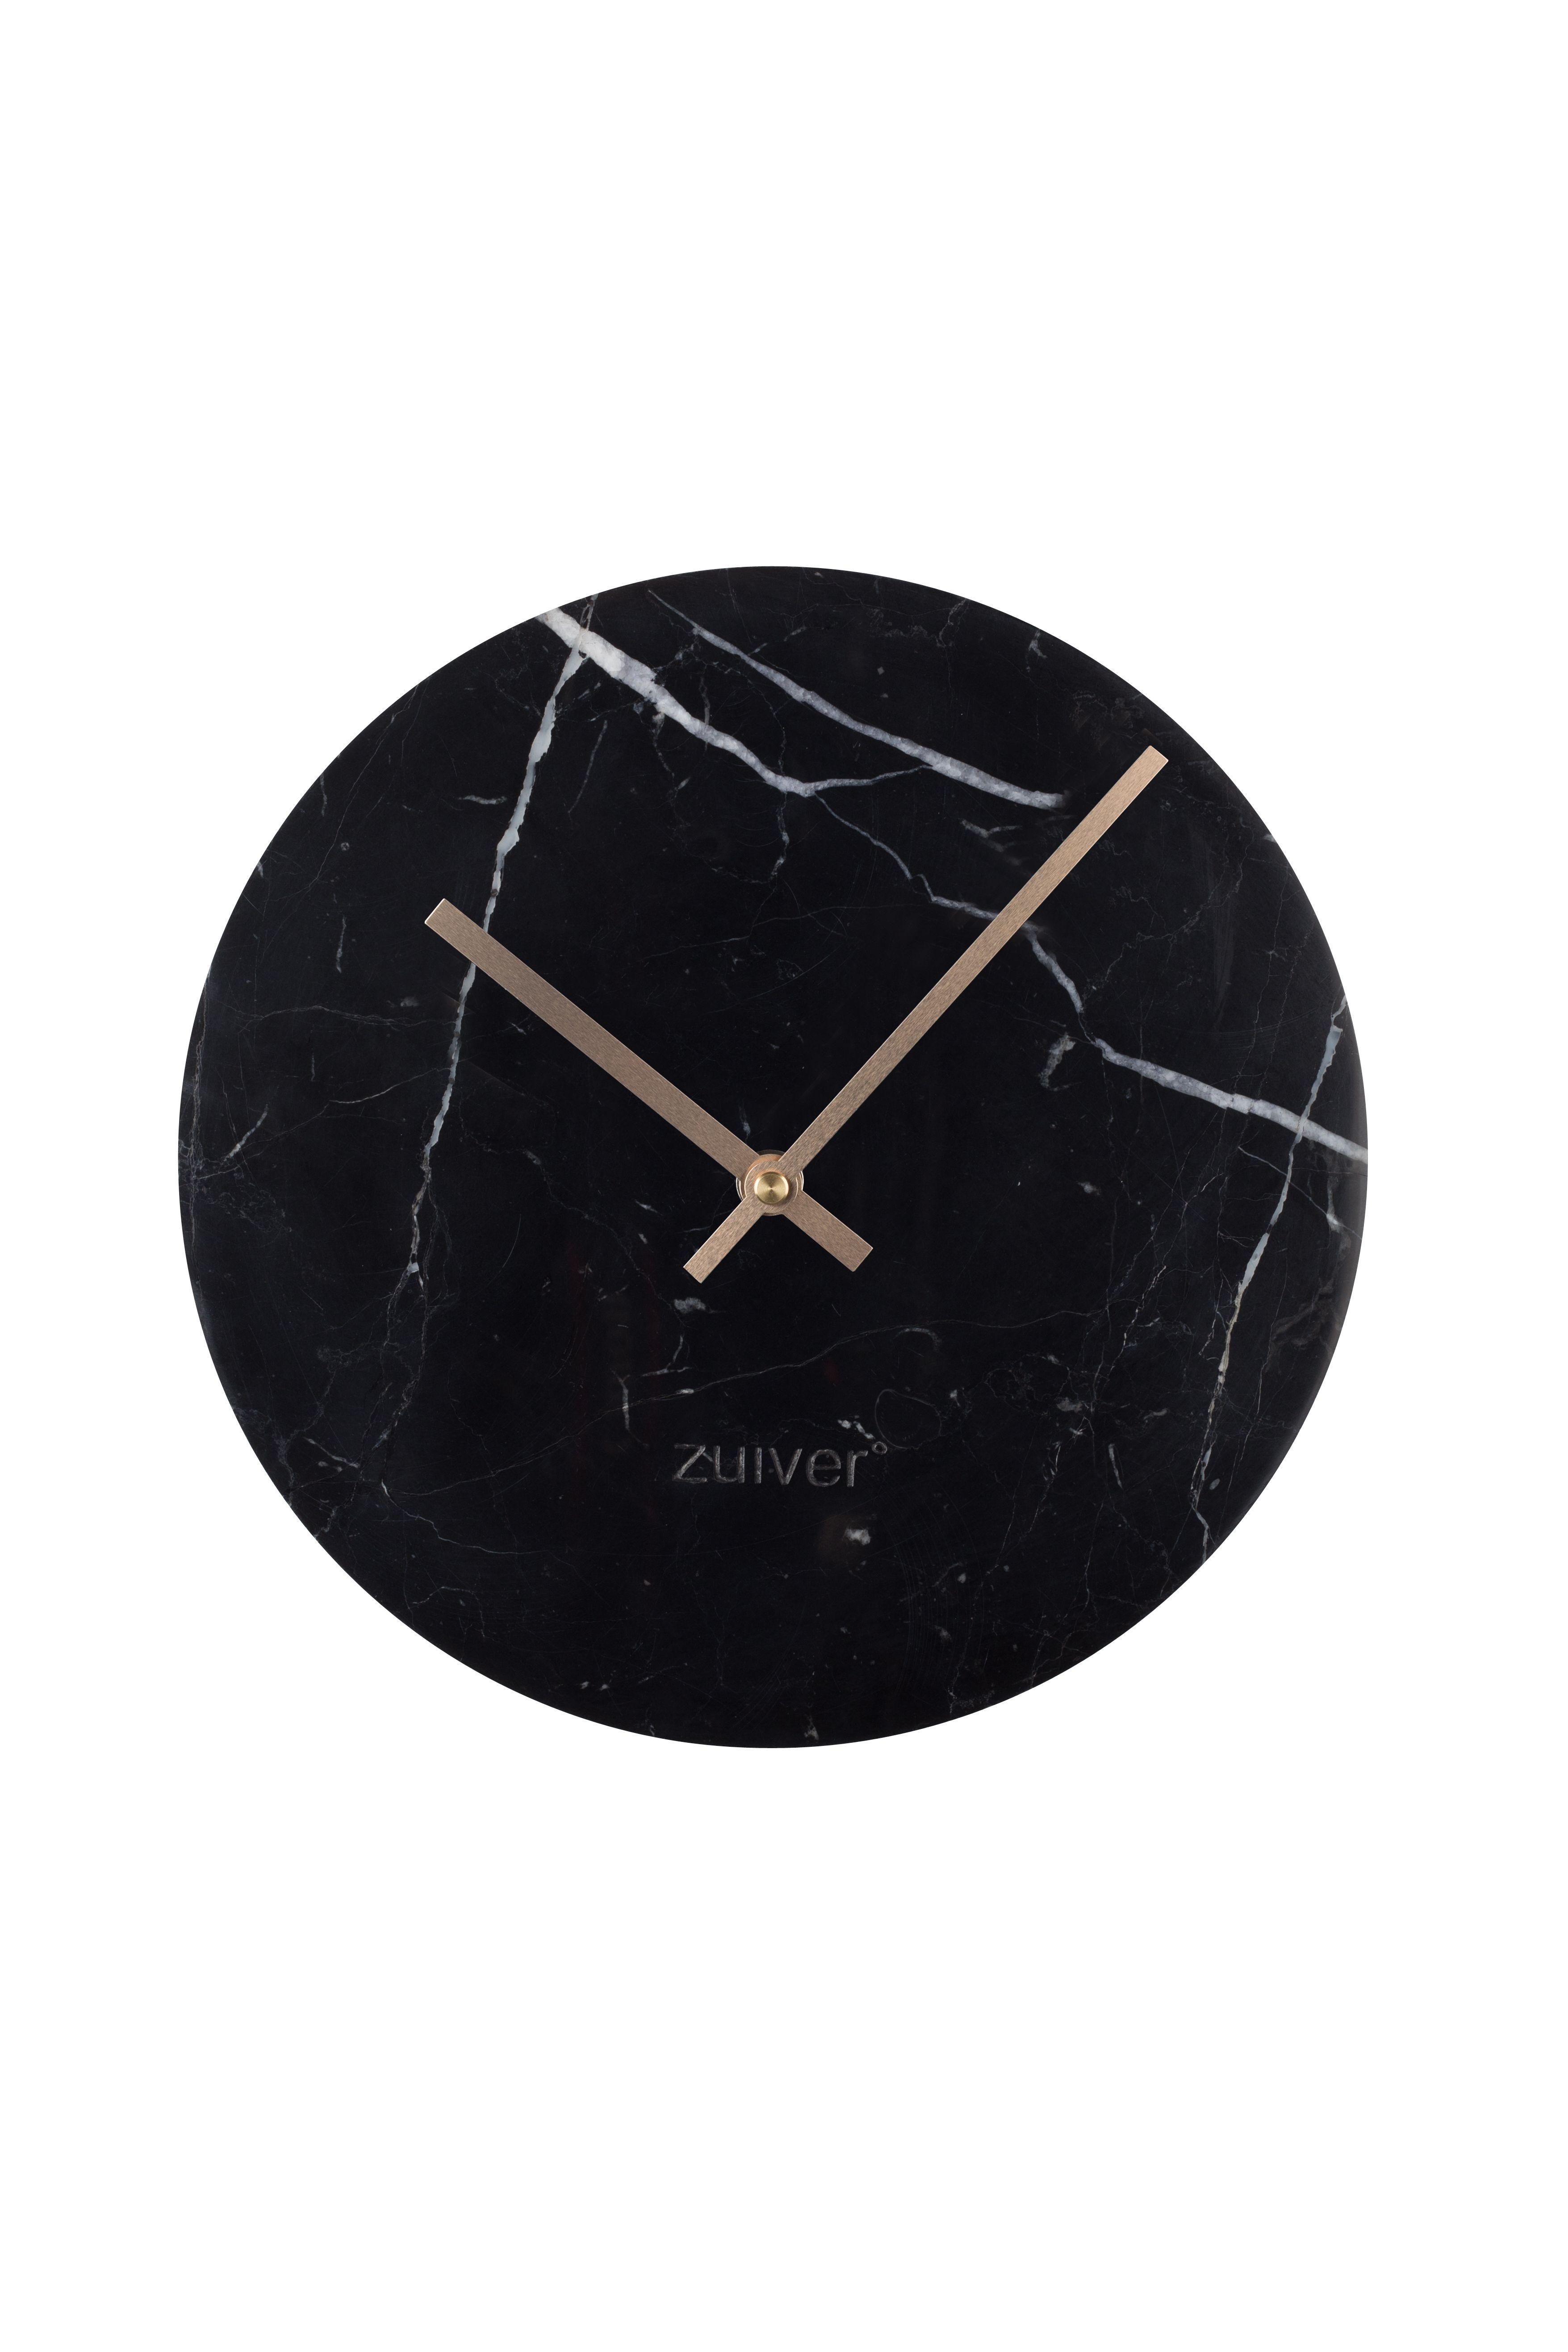 Marble Time Wall Clock Clock Black Marble Marble